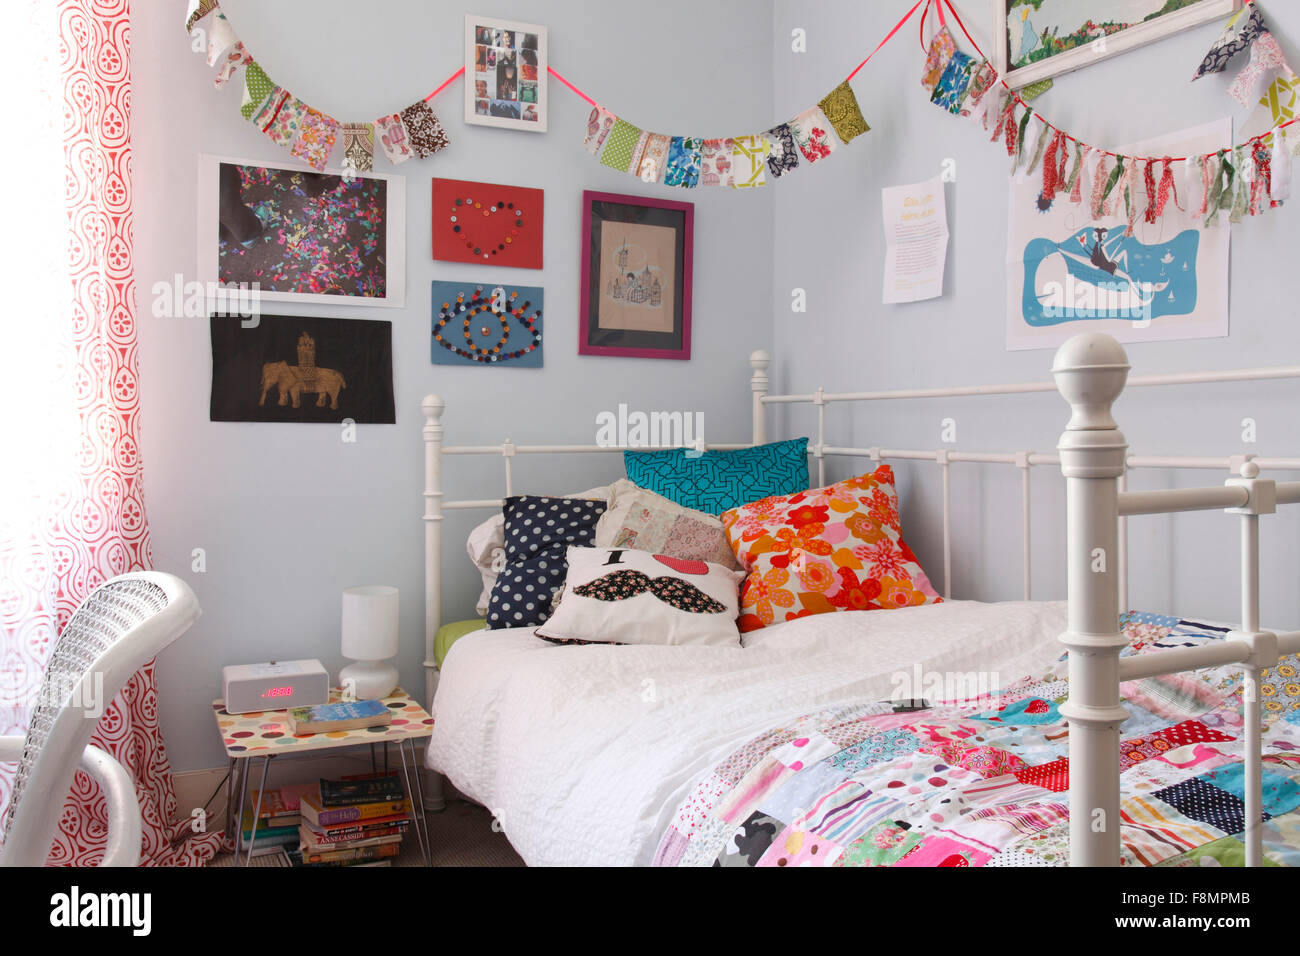 Little girl's bedroom with patchwork quilt and bunting - Stock Image